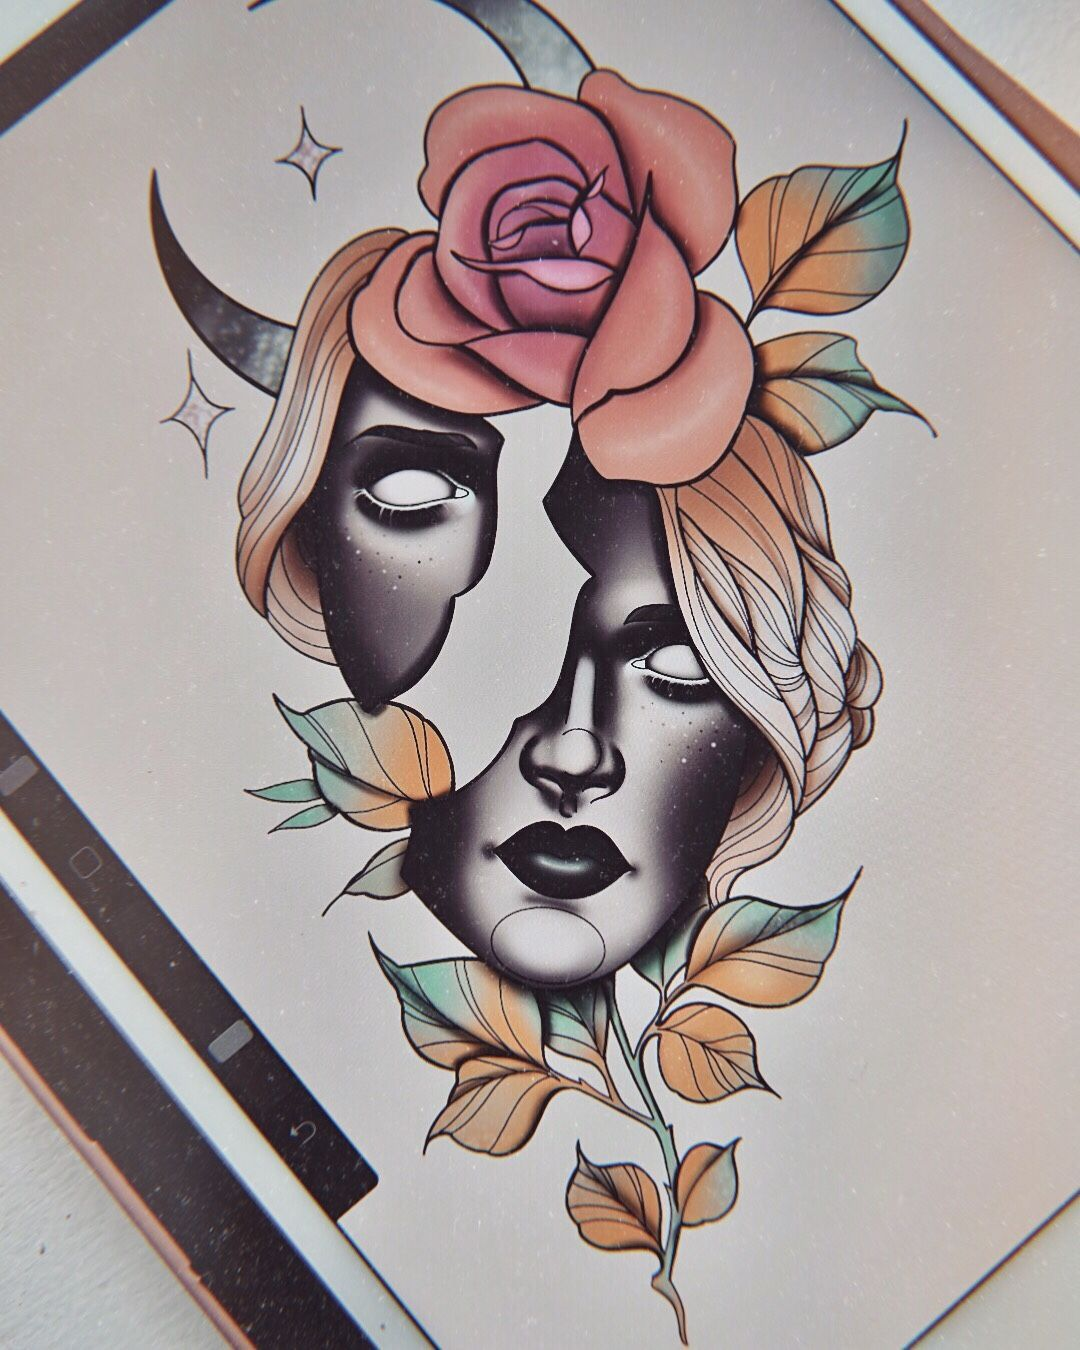 Lady Face Flower Moon Rose Tattoo Design Laurenceveillx In 2020 Rose Tattoo Design Tattoo Designs Tattoo Style Drawings